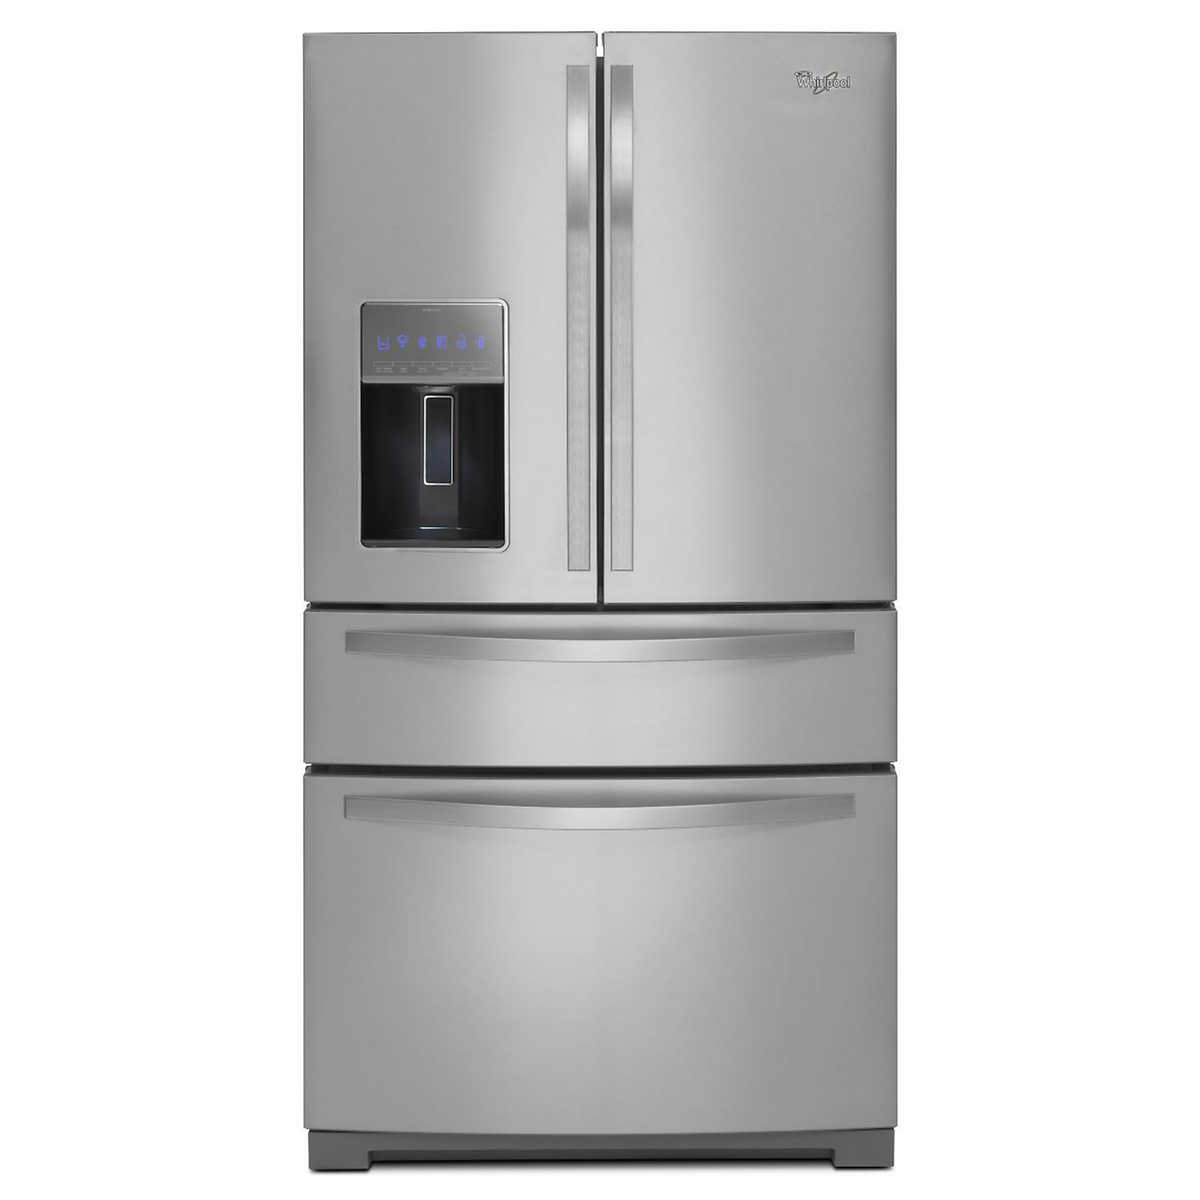 Whirlpool white ice costco - Whirlpool 26cuft 4 Door French Door Stainless Steel Refrigerator With More Flexible Storage